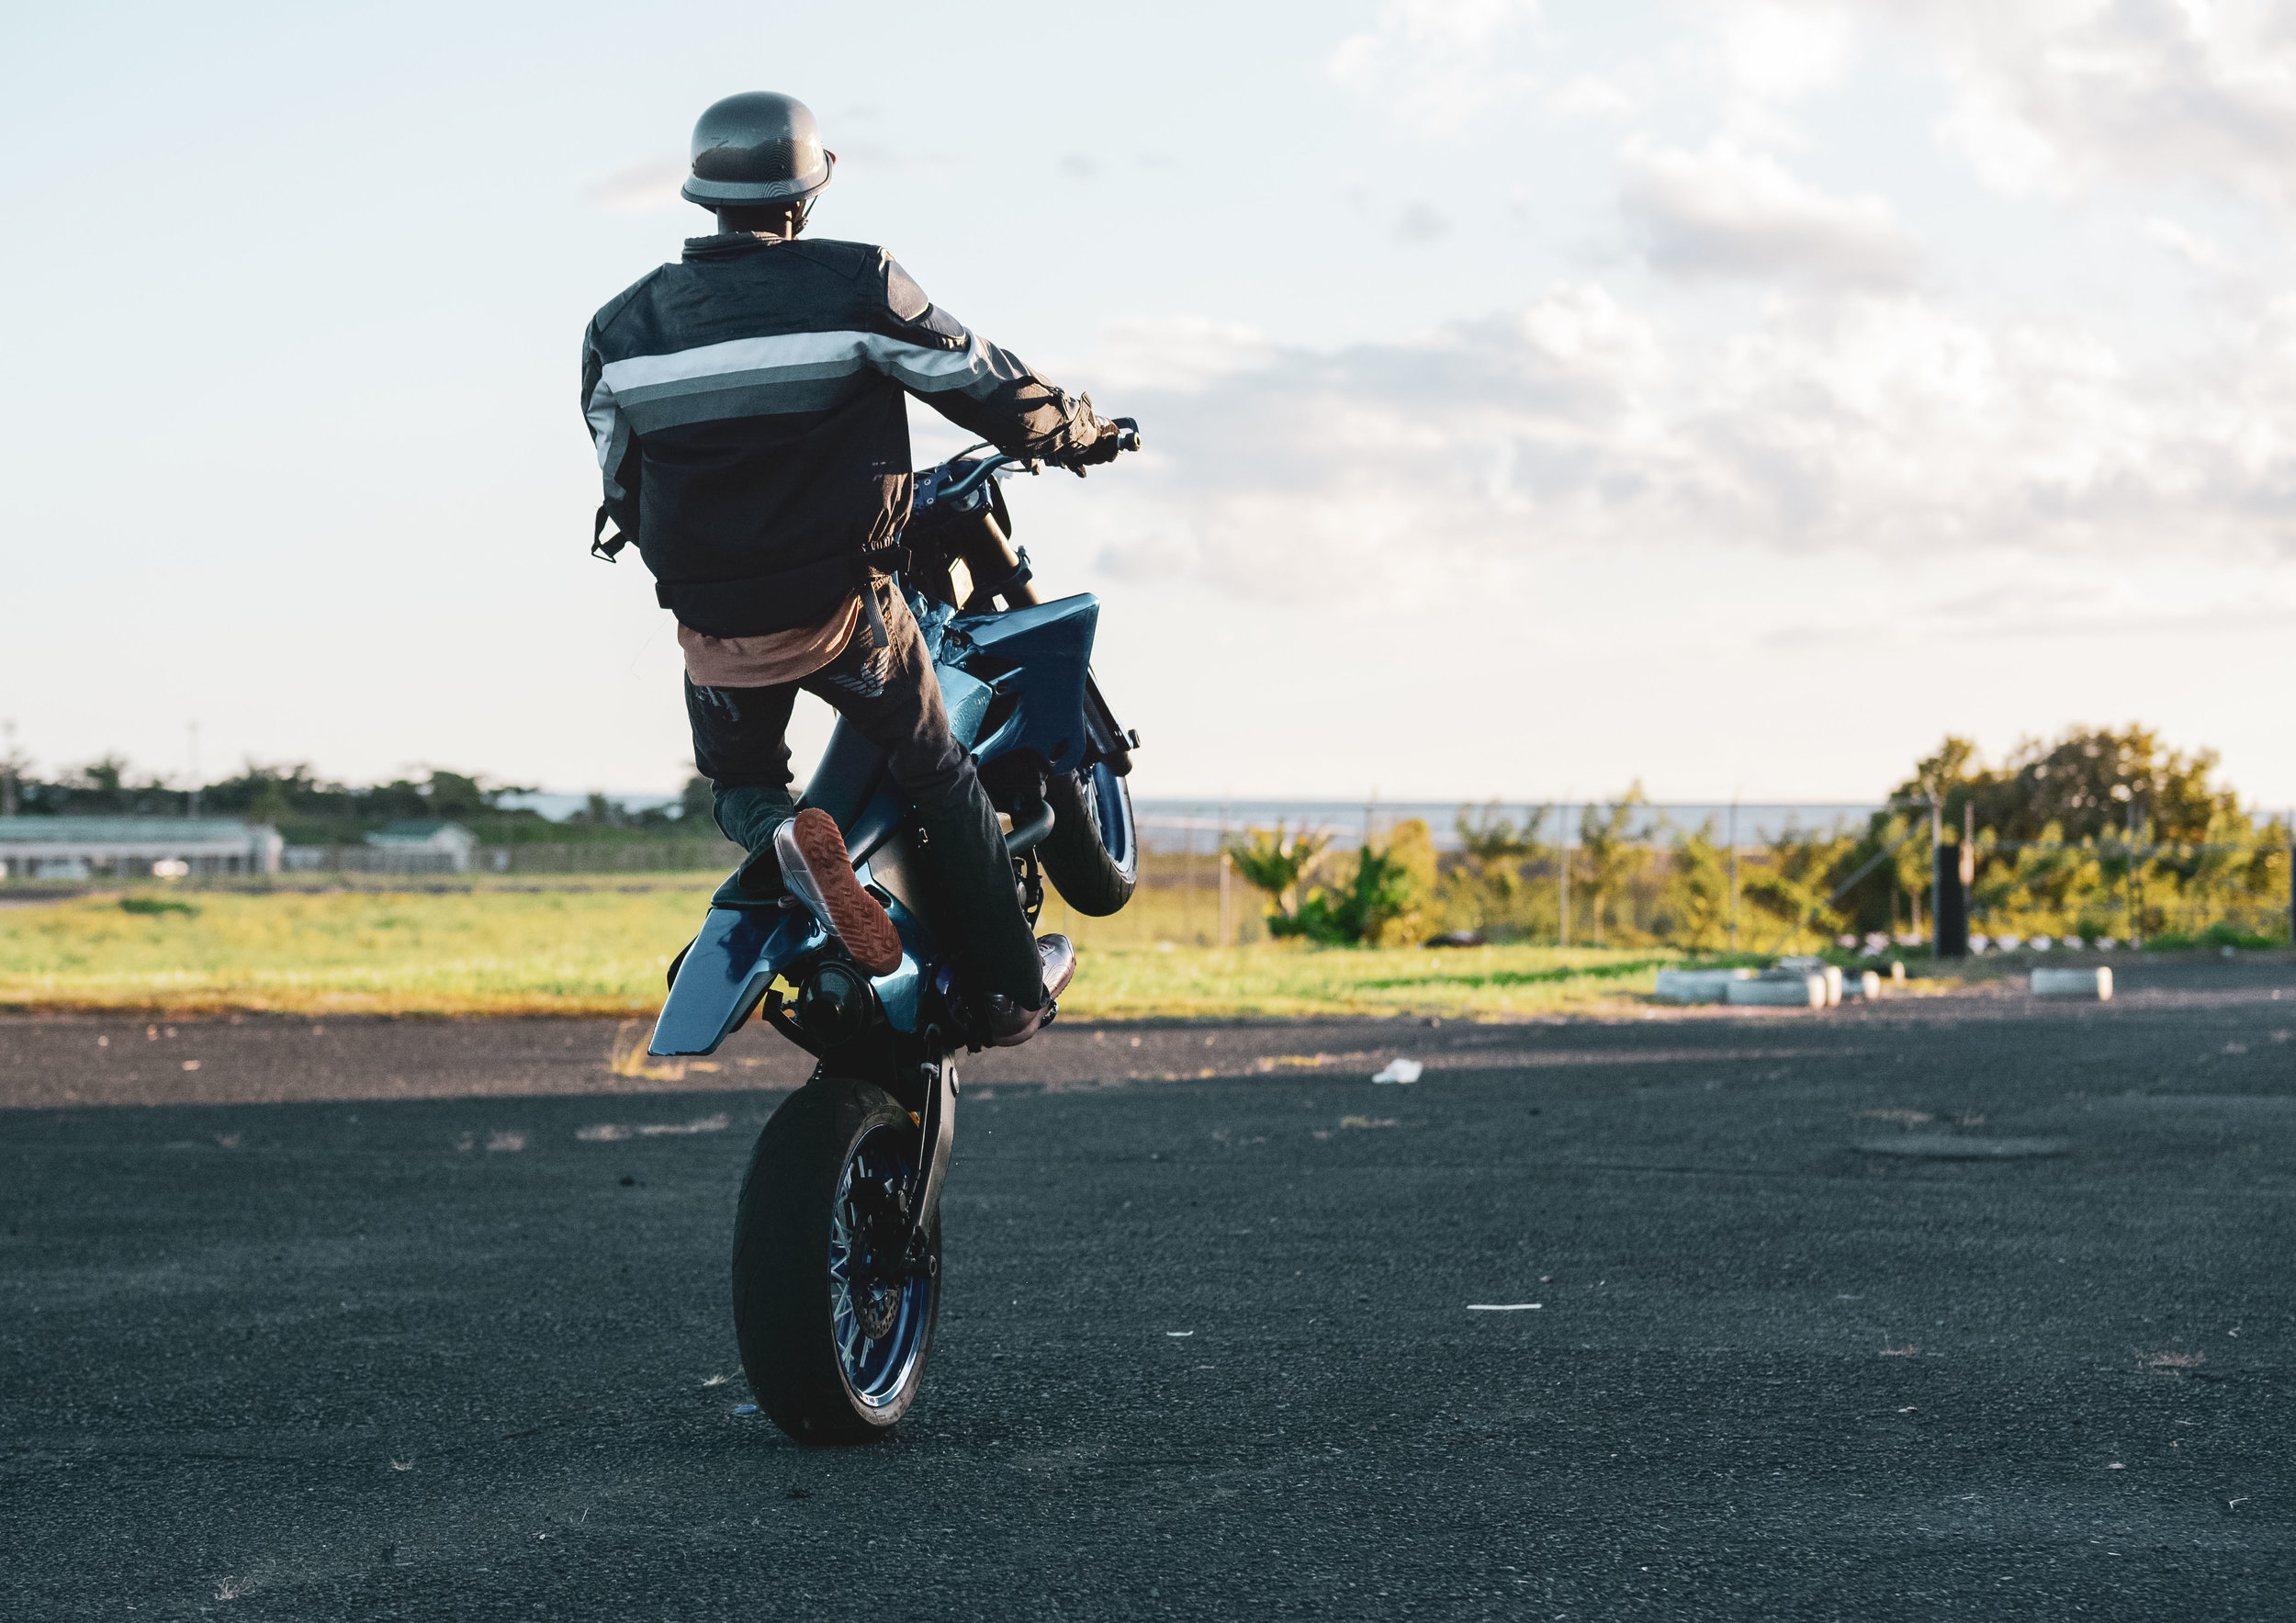 Wheelies and Stoppies - Small Man - 450-8384.jpg